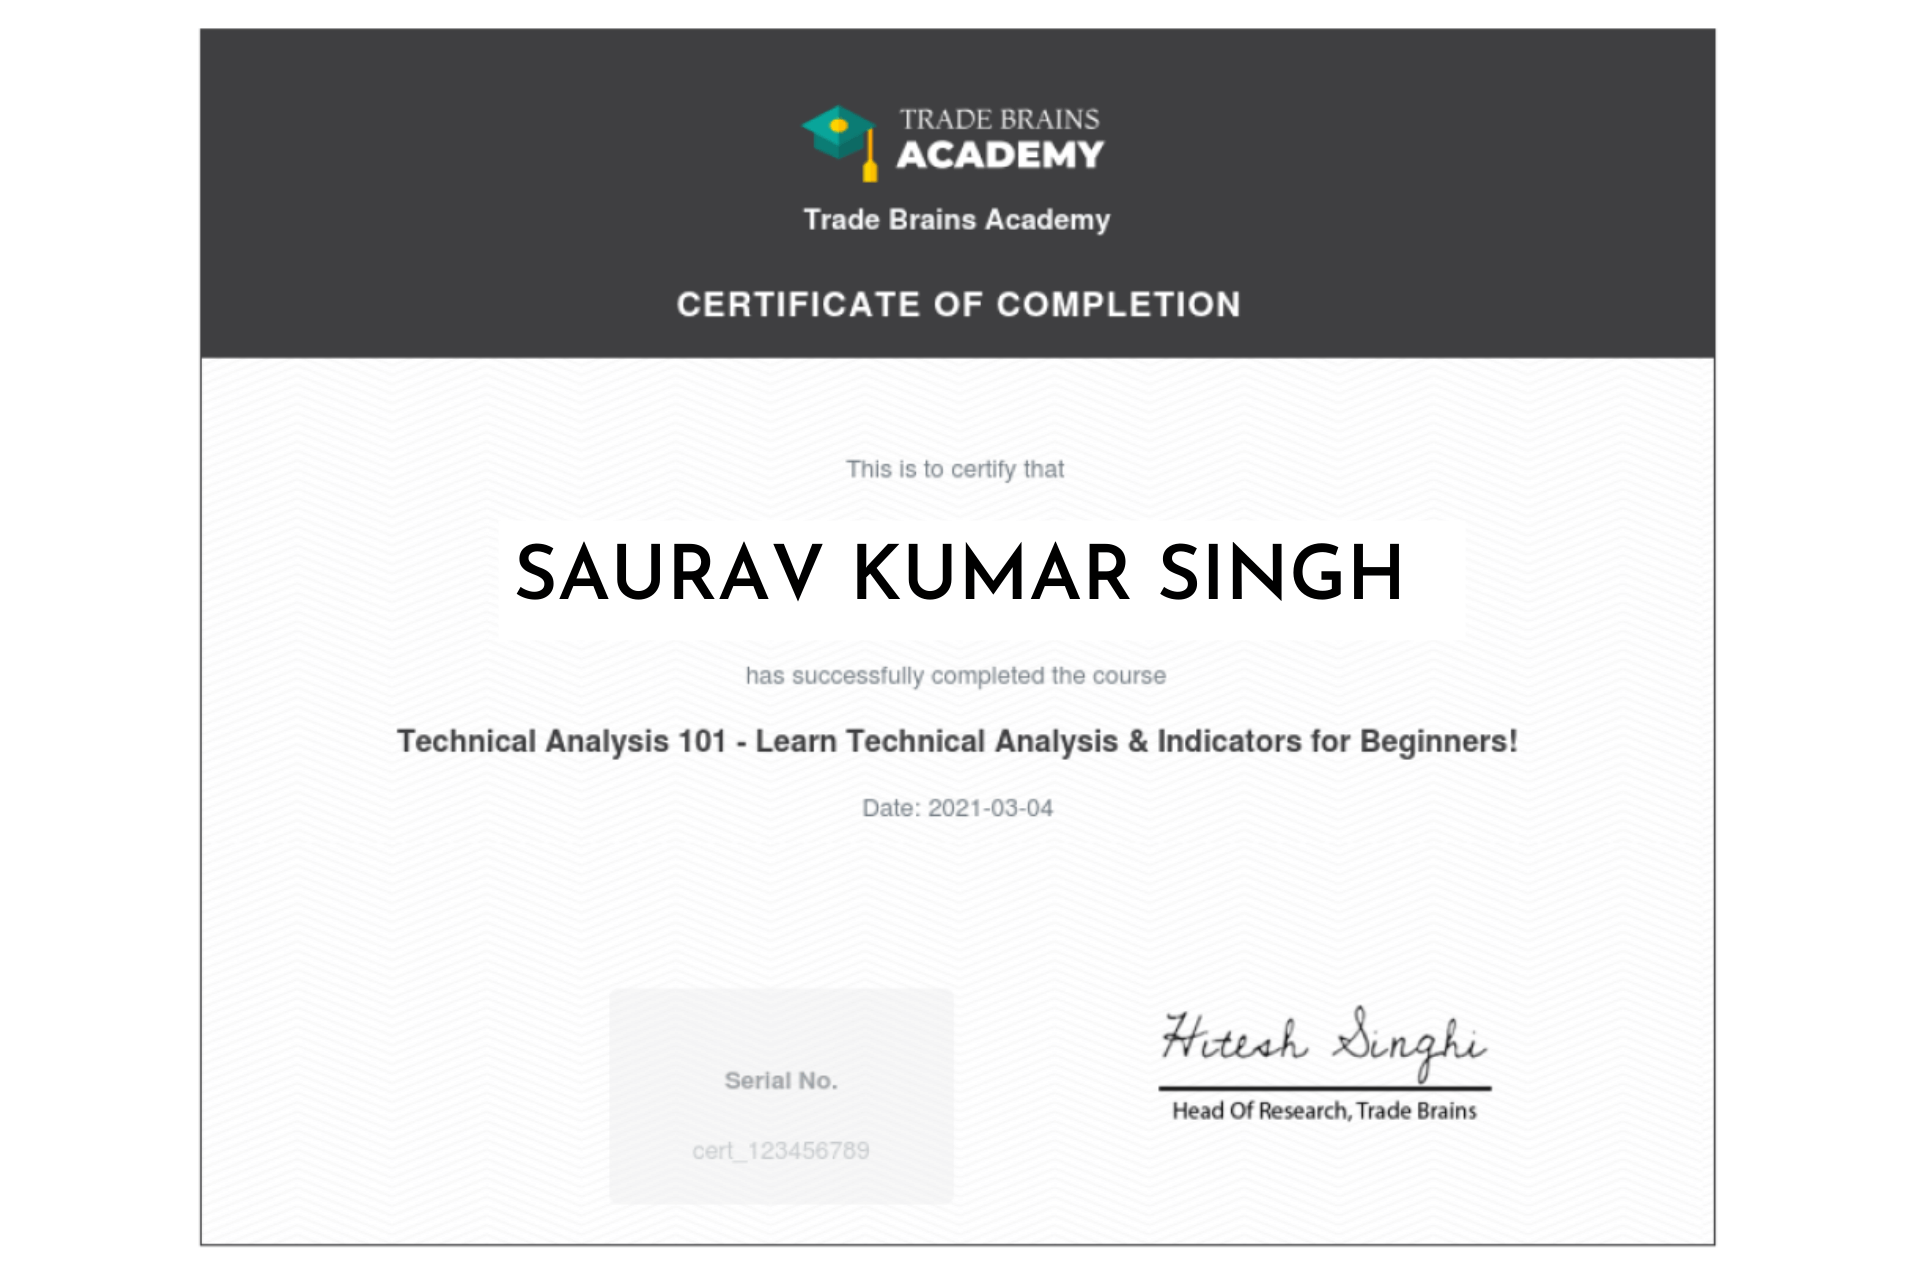 technical analysis course completion certificate